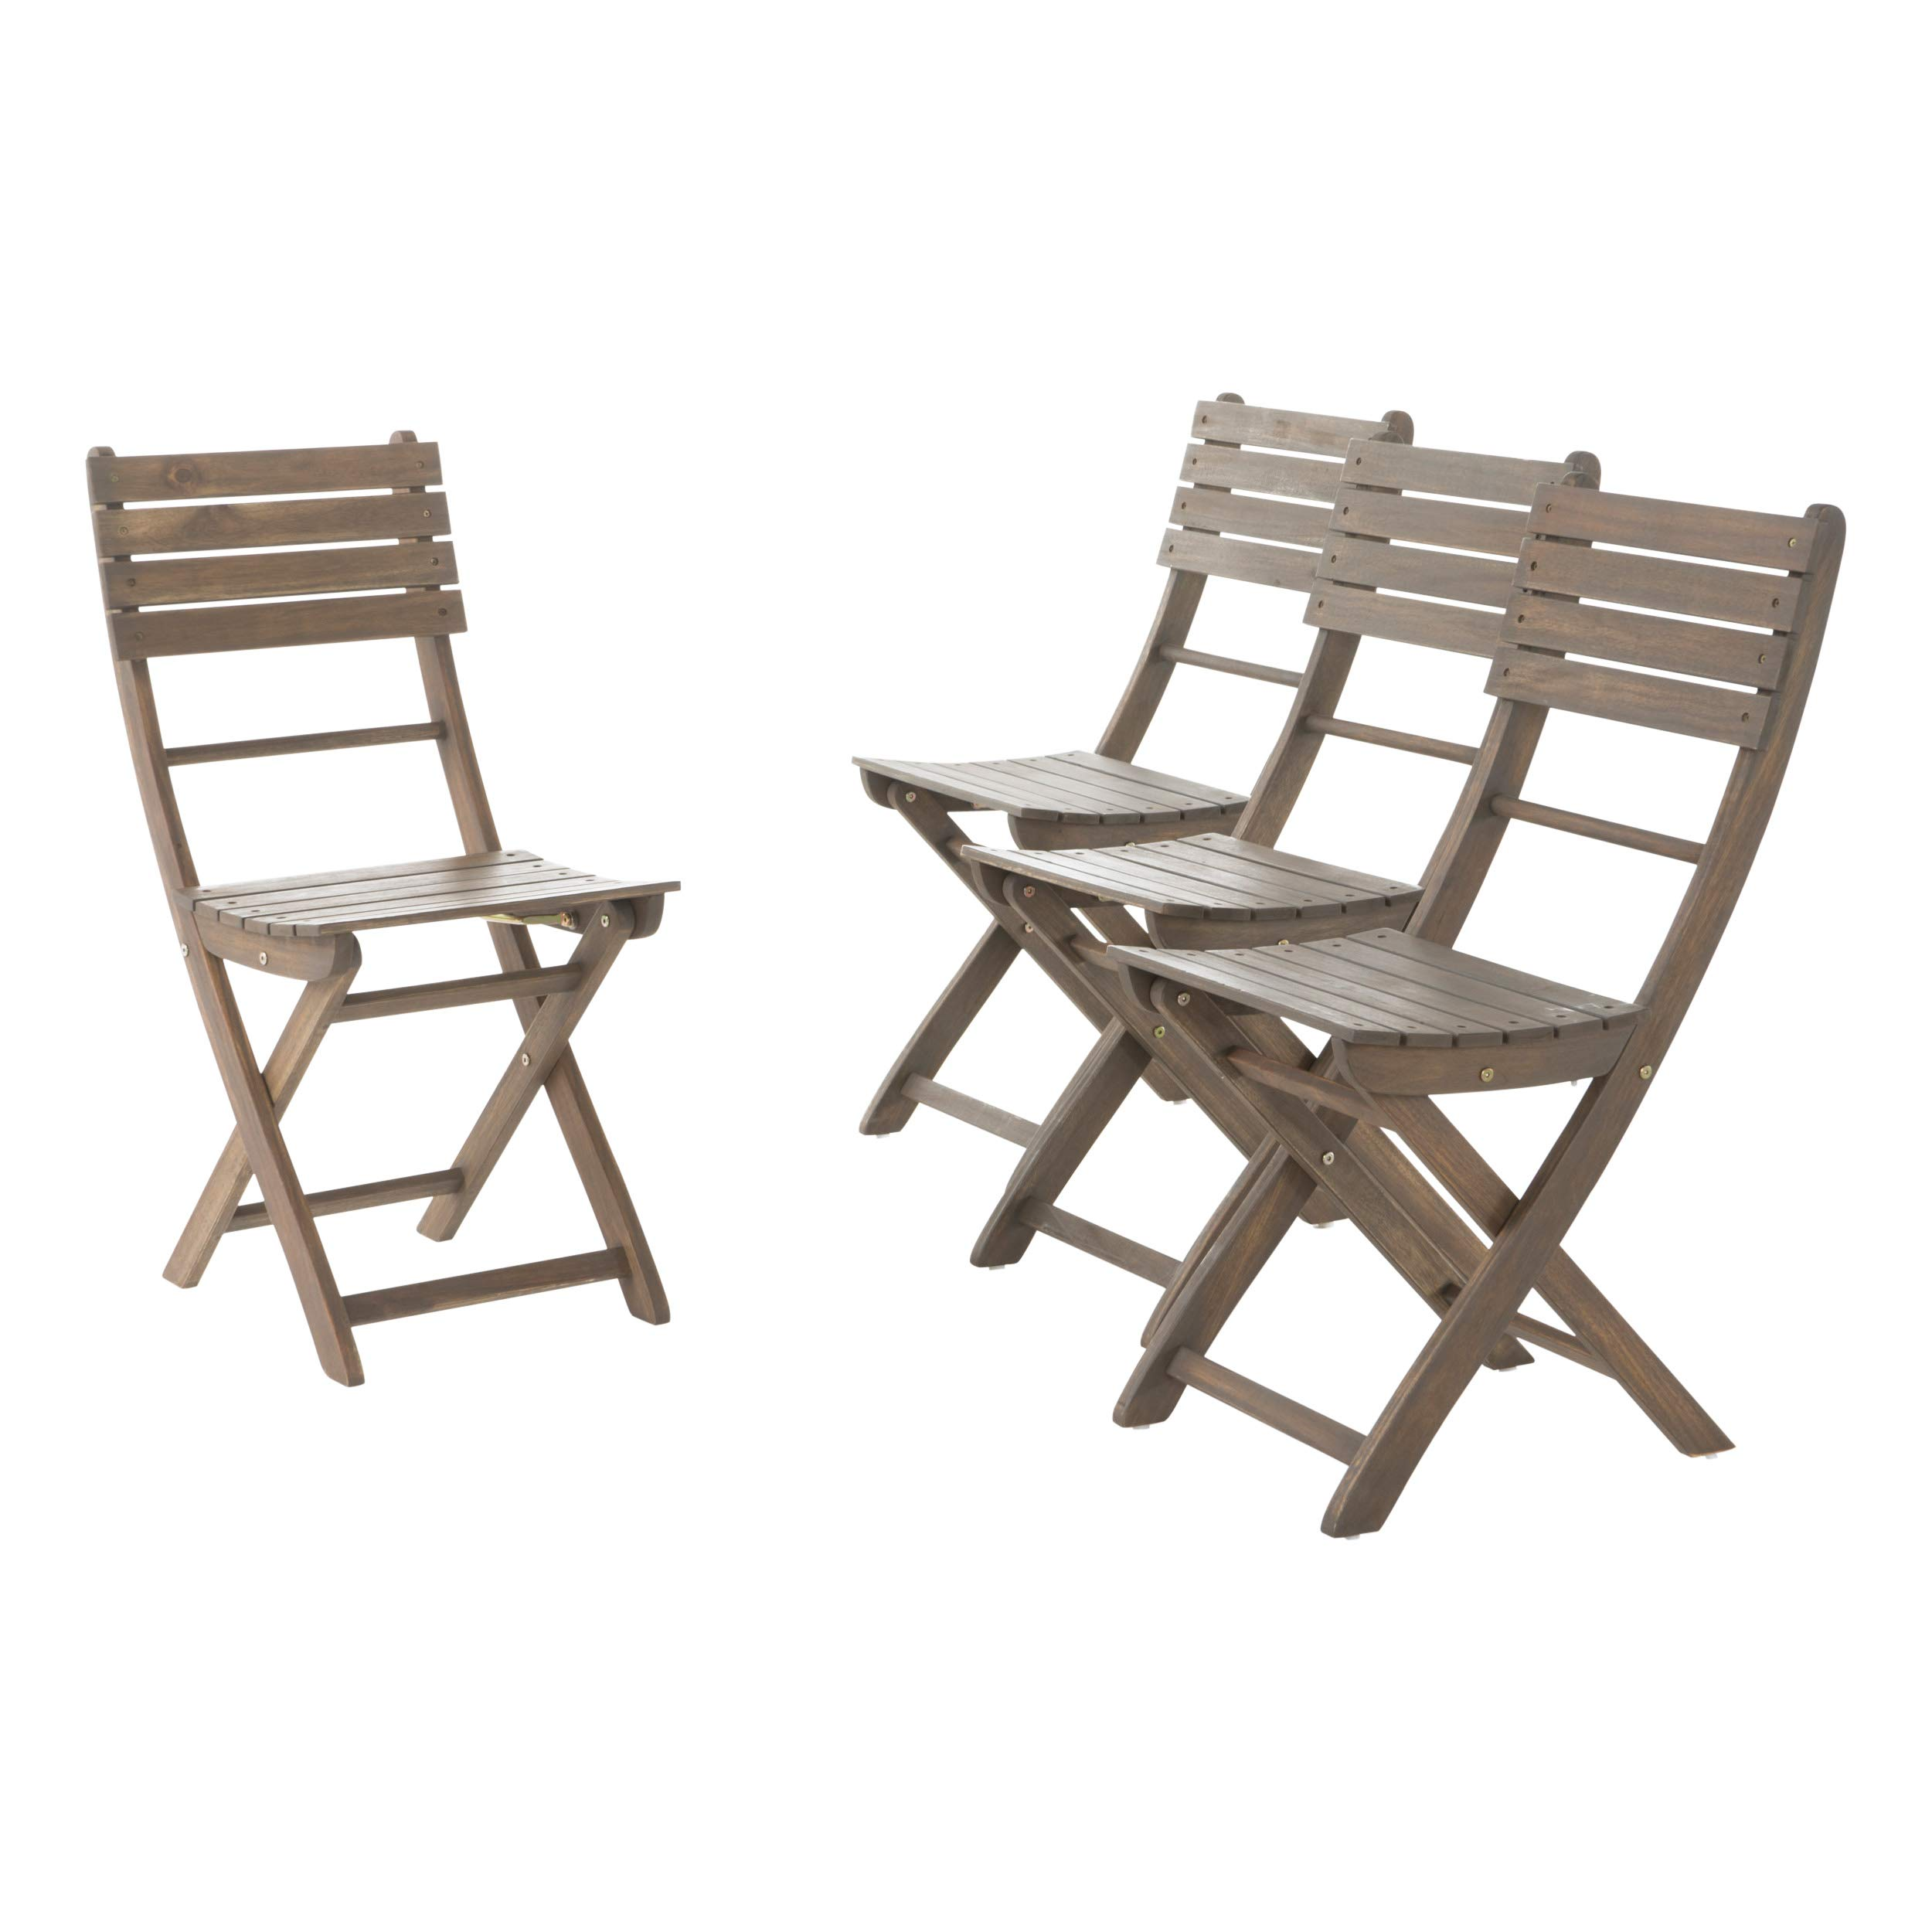 GDF Studio Vicaro | Acacia Wood Outdoor Foldable Dining Chairs | Set of 4 | Perfect for Patio | with Grey Finish